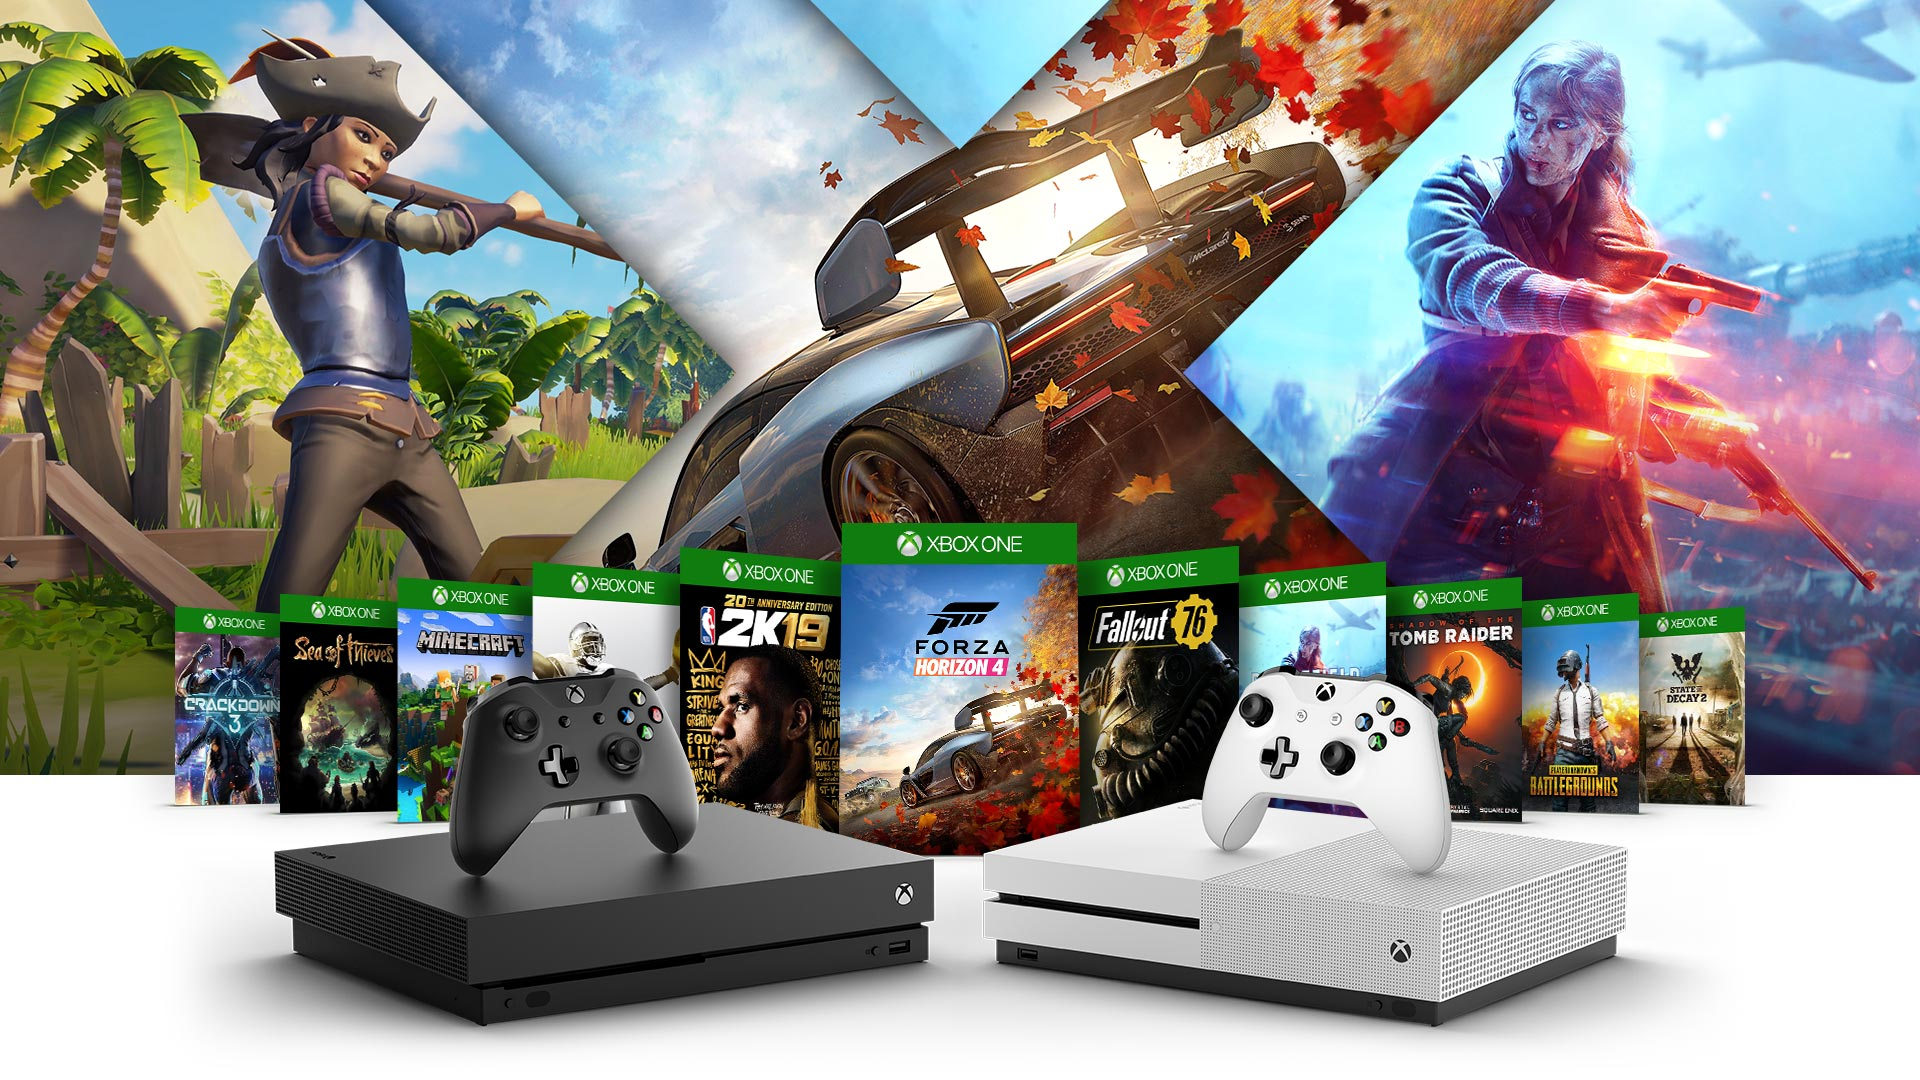 Crackdown 3、Sea of​​ Thieves、Minecraft、Madden 19,2K19、Forza Horizo​​n 4、Fallout 76、Battlefield Five、Shadow of the Tomb Raider、Player's Unknown Battlegrounds、State of Decay 2に囲まれた Xbox One X と Xbox One S の側面図